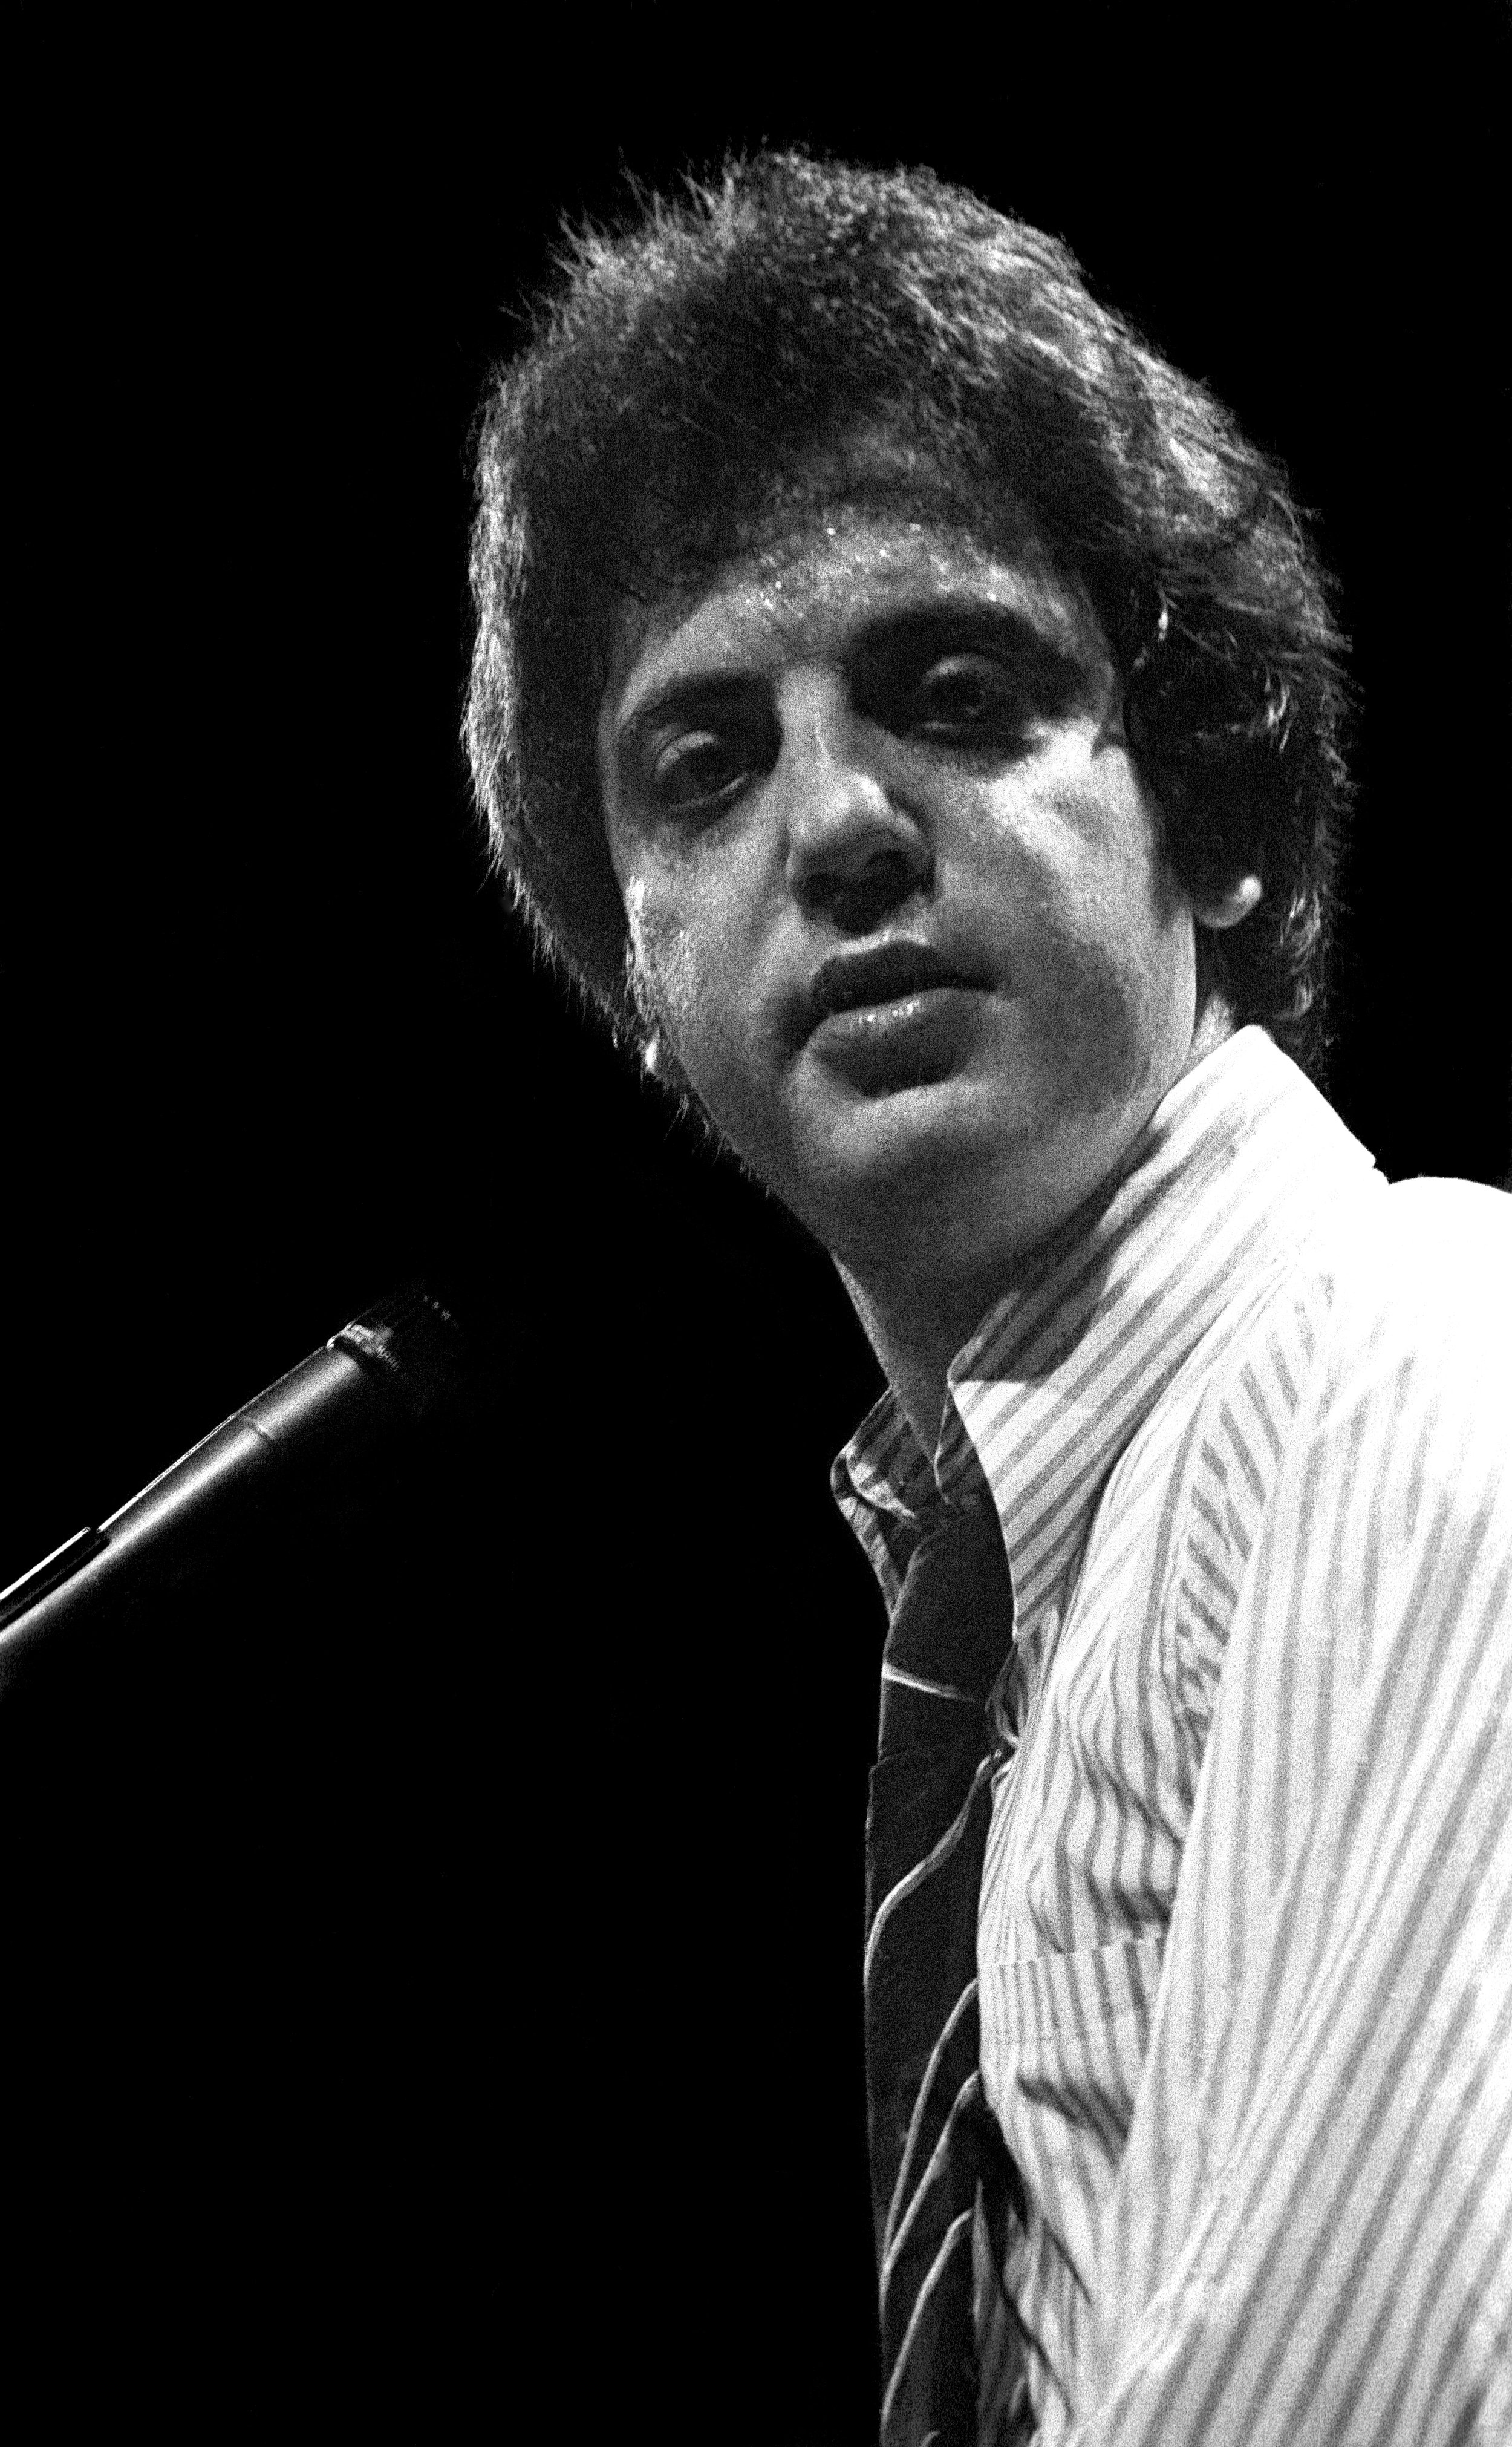 Musician Billy Joel playing piano live in concert on May 5,1976 in Union, New Jersey.